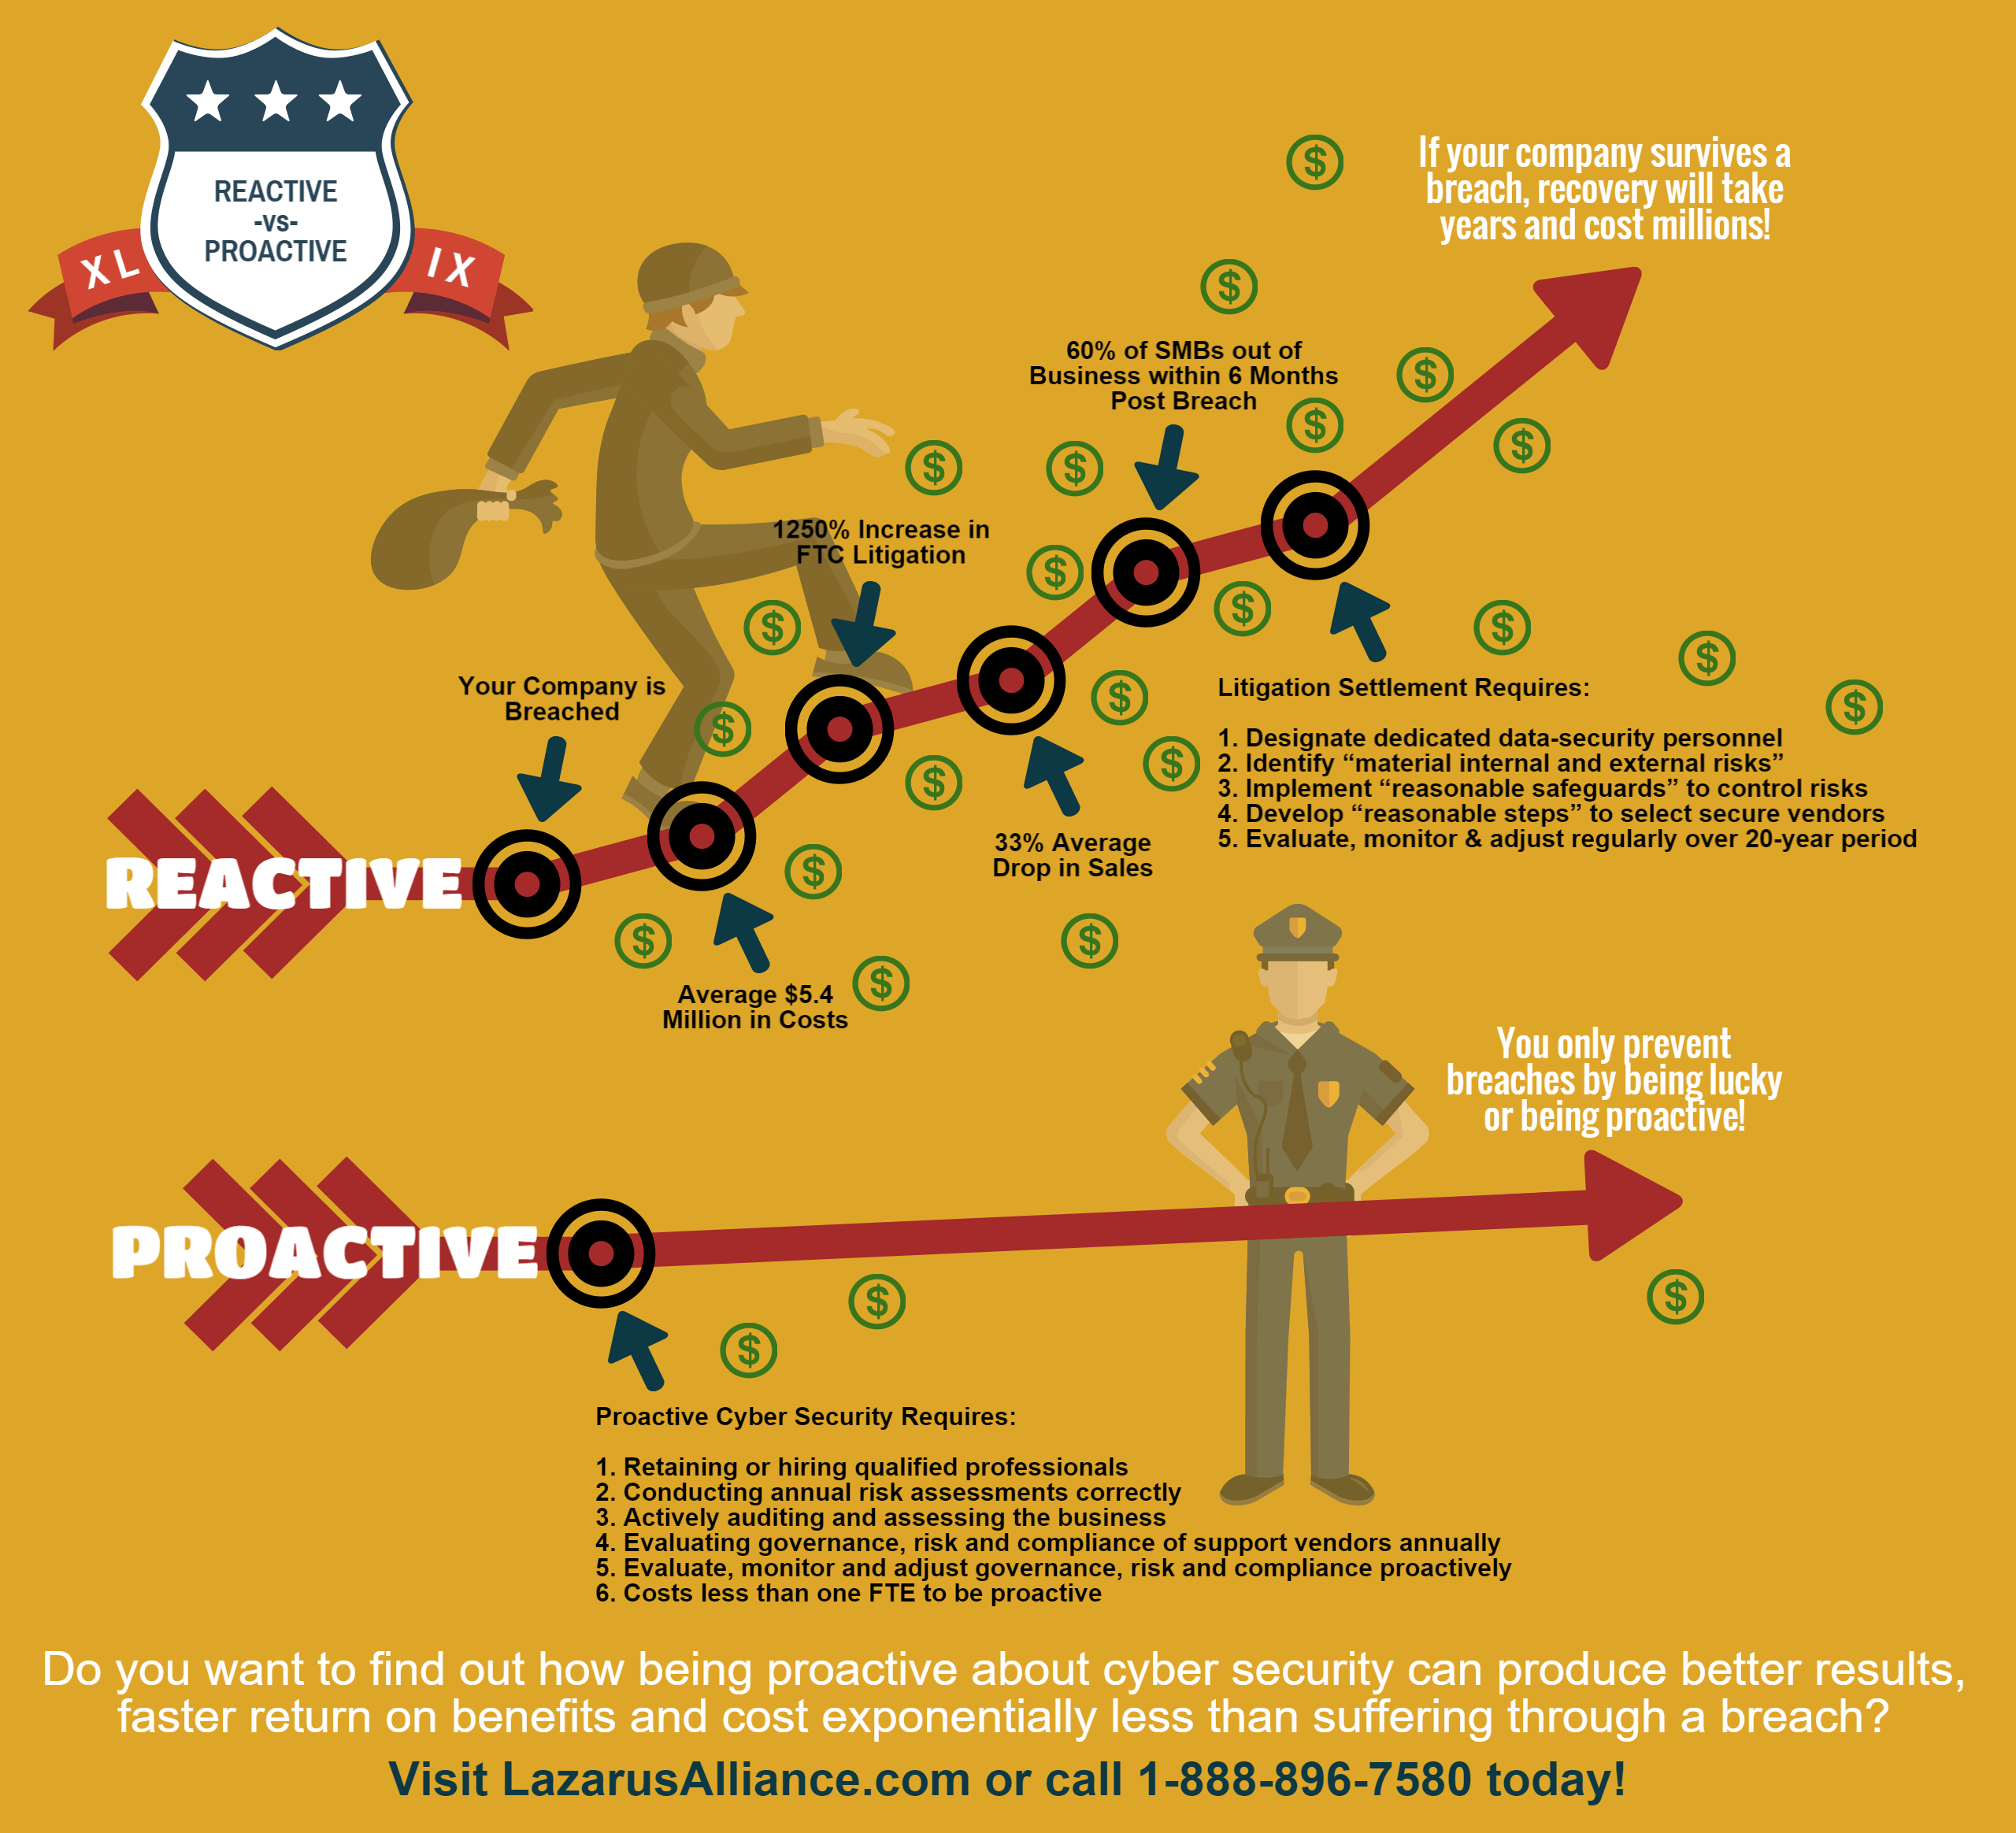 Reactive -vs- Proactive Cyber Security Impacts